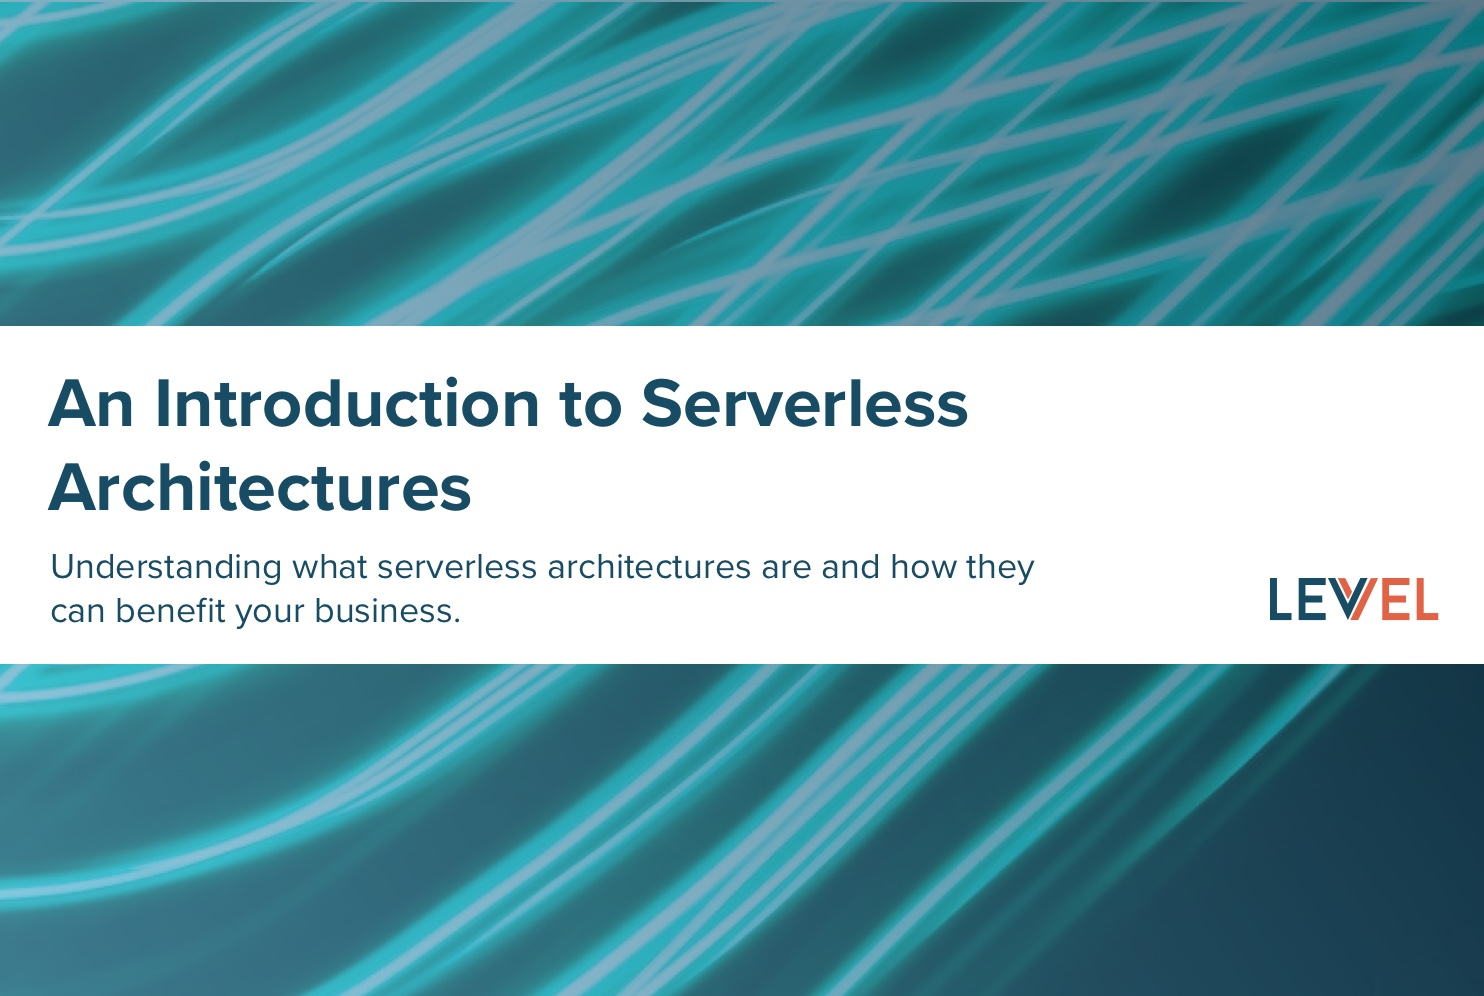 An Introduction to Serverless Architectures